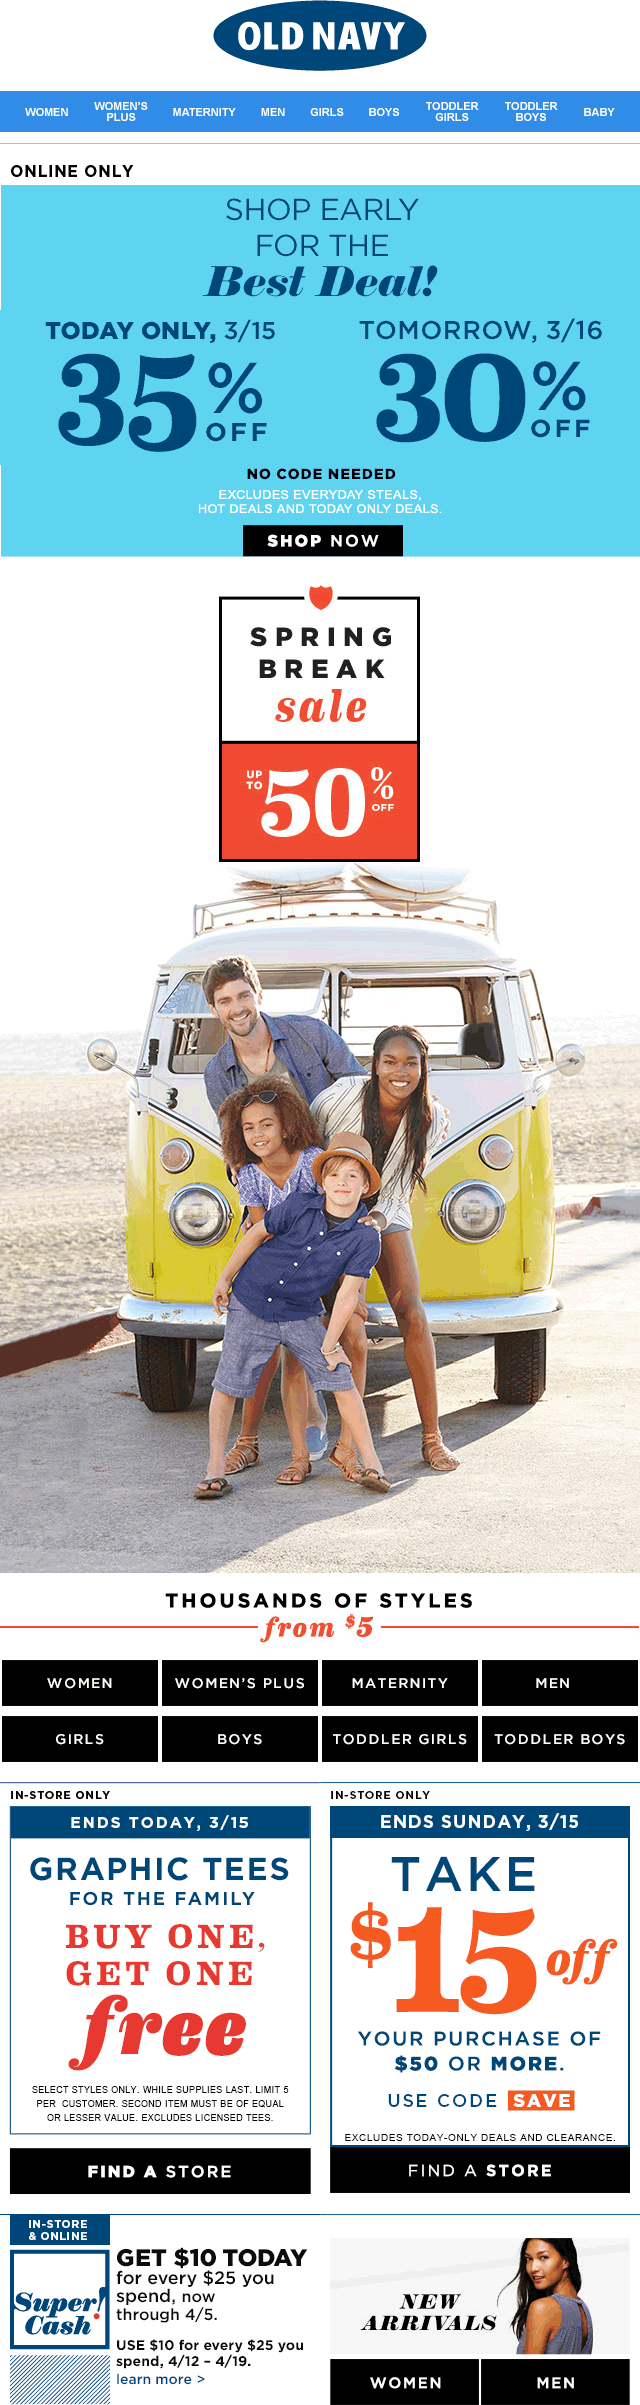 Old Navy Coupon March 2018 $15 off $50 & more at Old Navy, or 30-35% off online